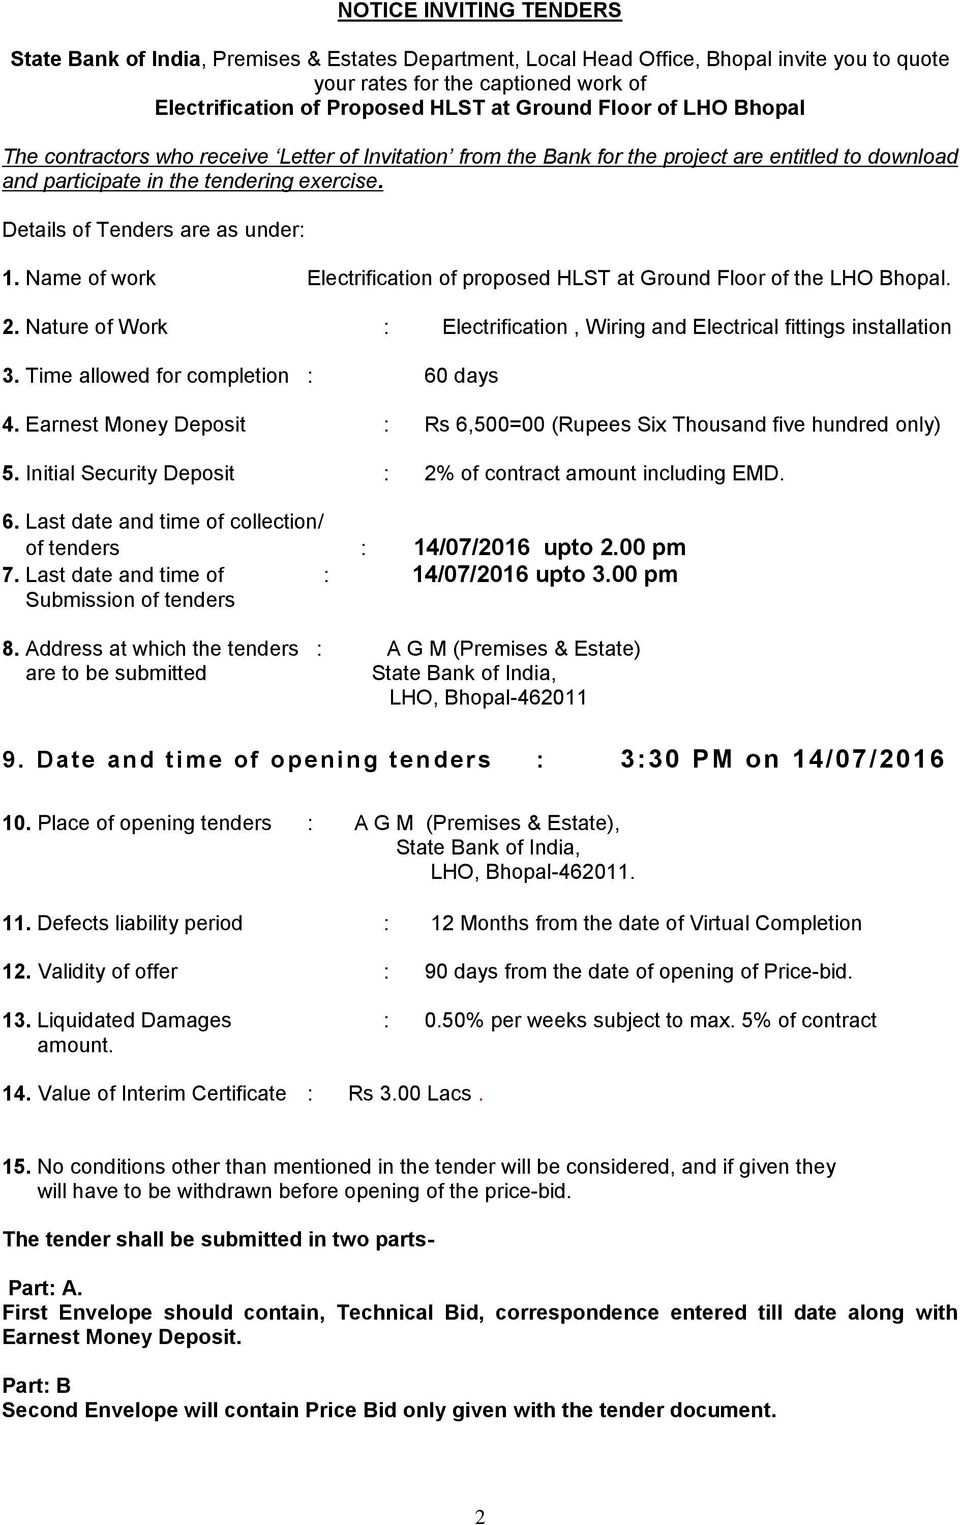 State Bank Of India Premises And Estates Department L H O Bhopal Pdf Wiring Earnest Money Details Tenders Are As Under 1 Name Work Electrification Proposed Hlst